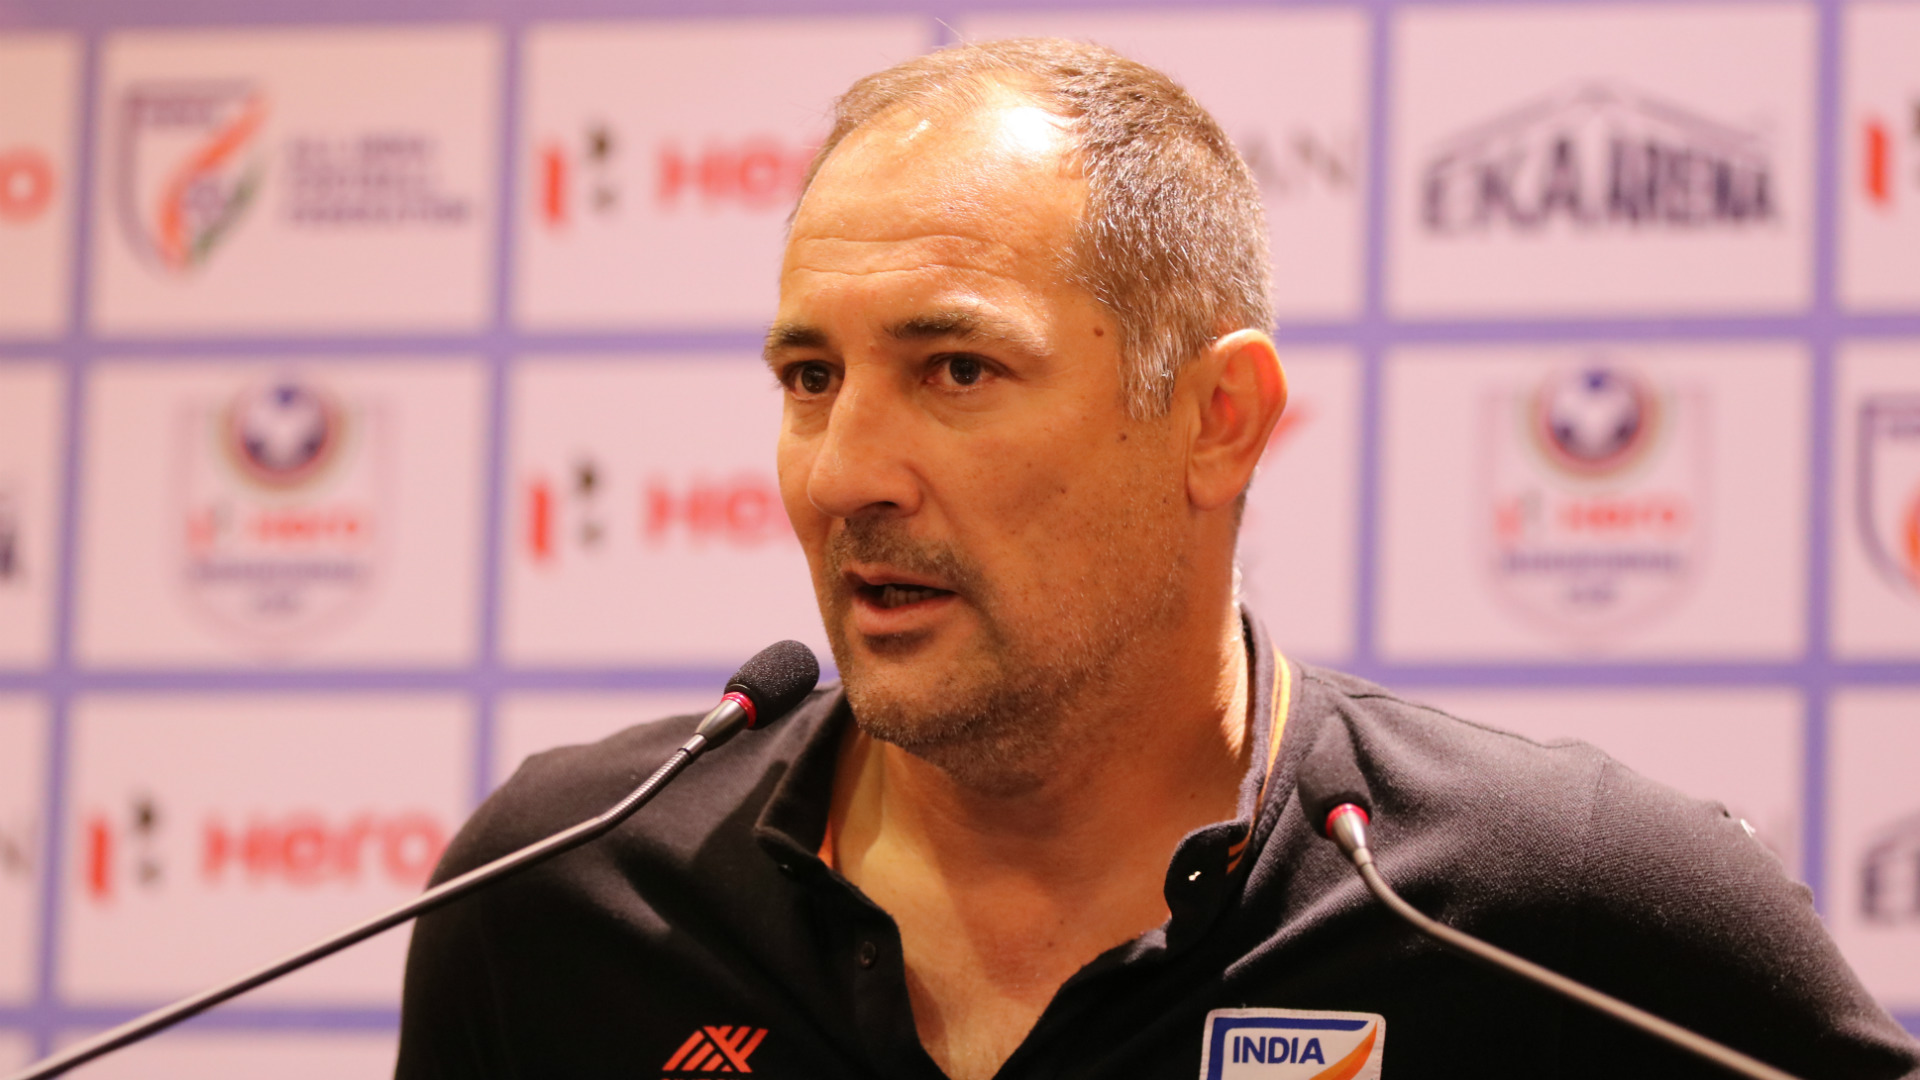 Intercontinental Cup 2019: Igor Stimac - I believe in the quality of India's young players